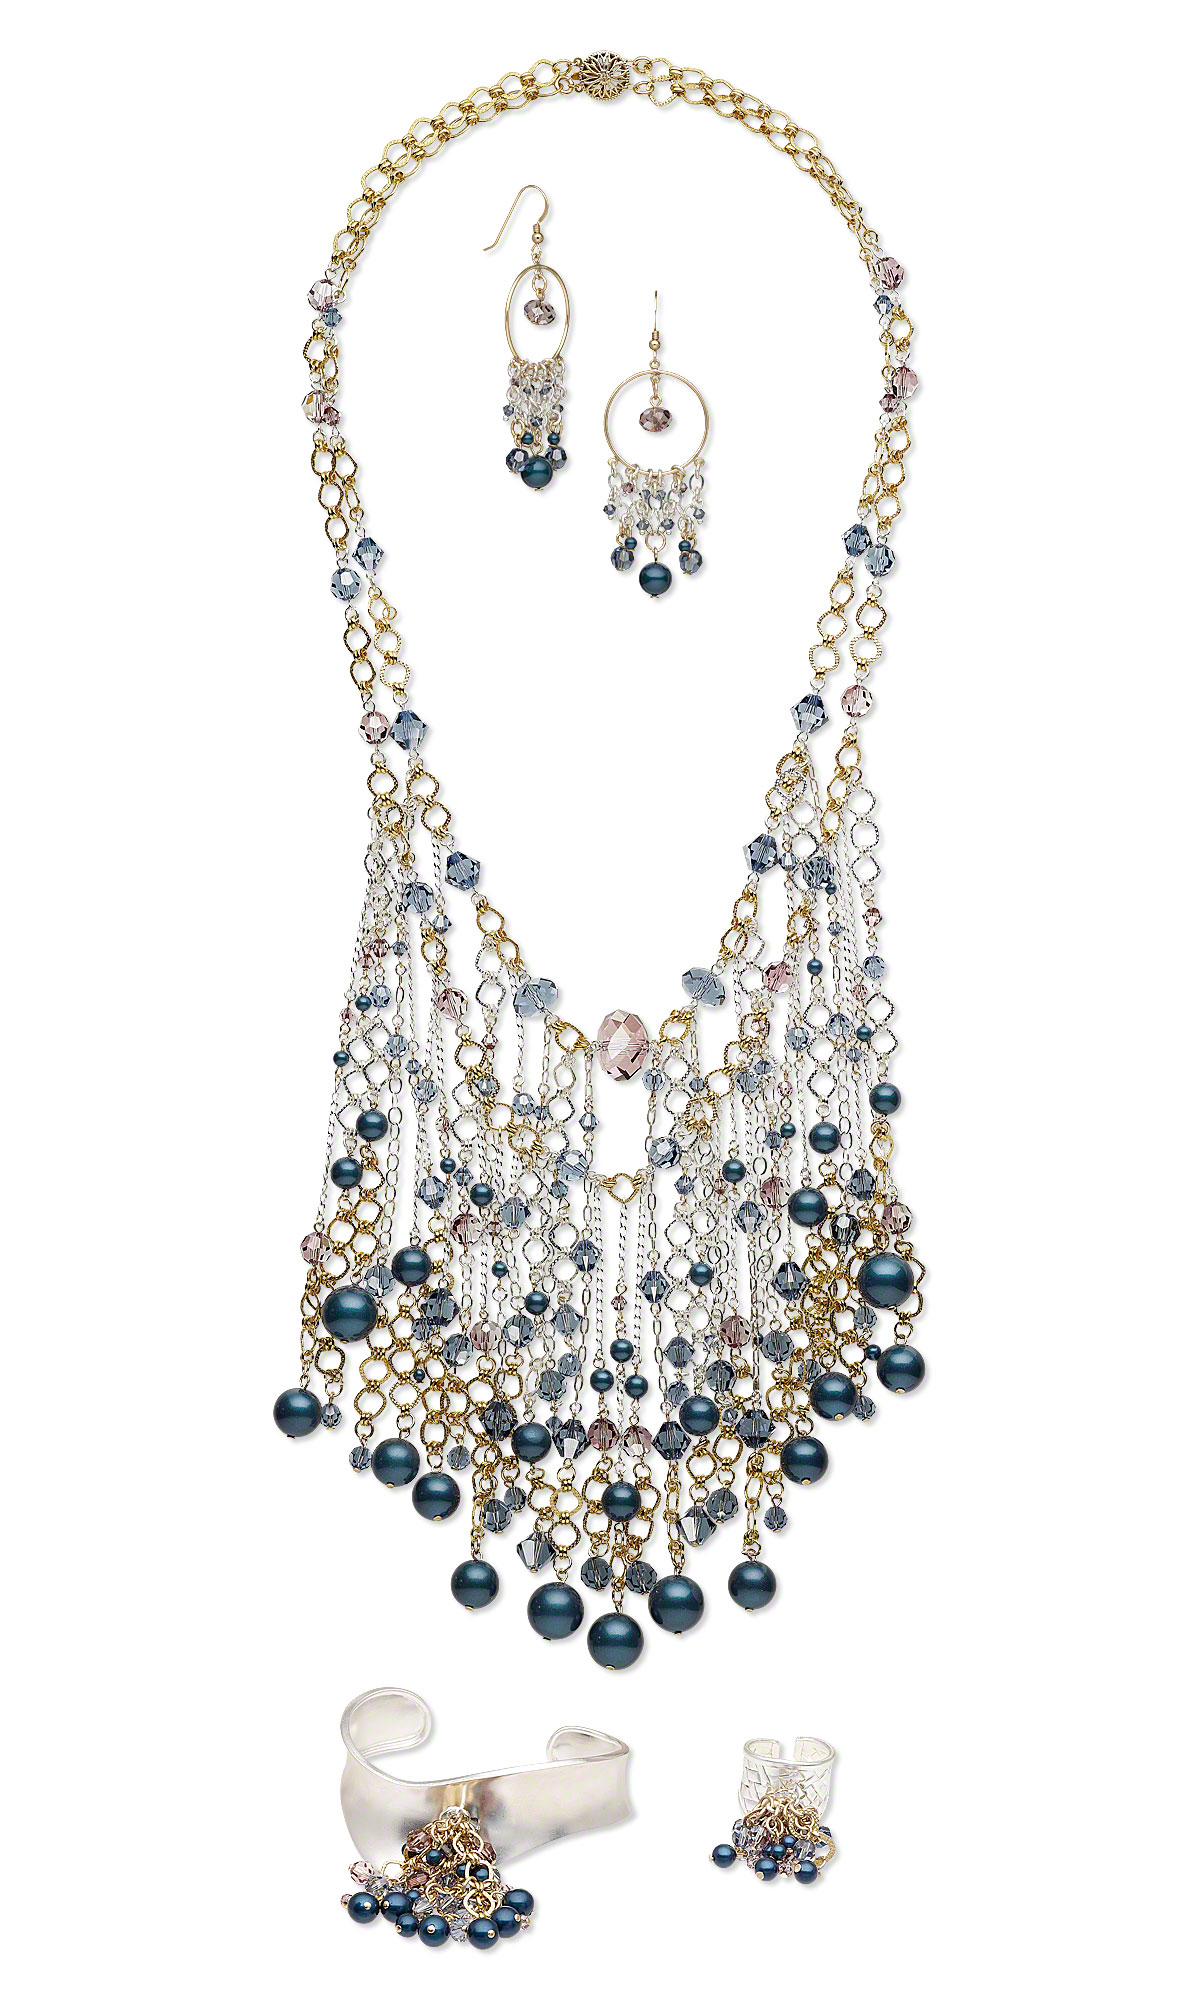 Jewelry Design Bib Style Necklace Bracelet Earring And